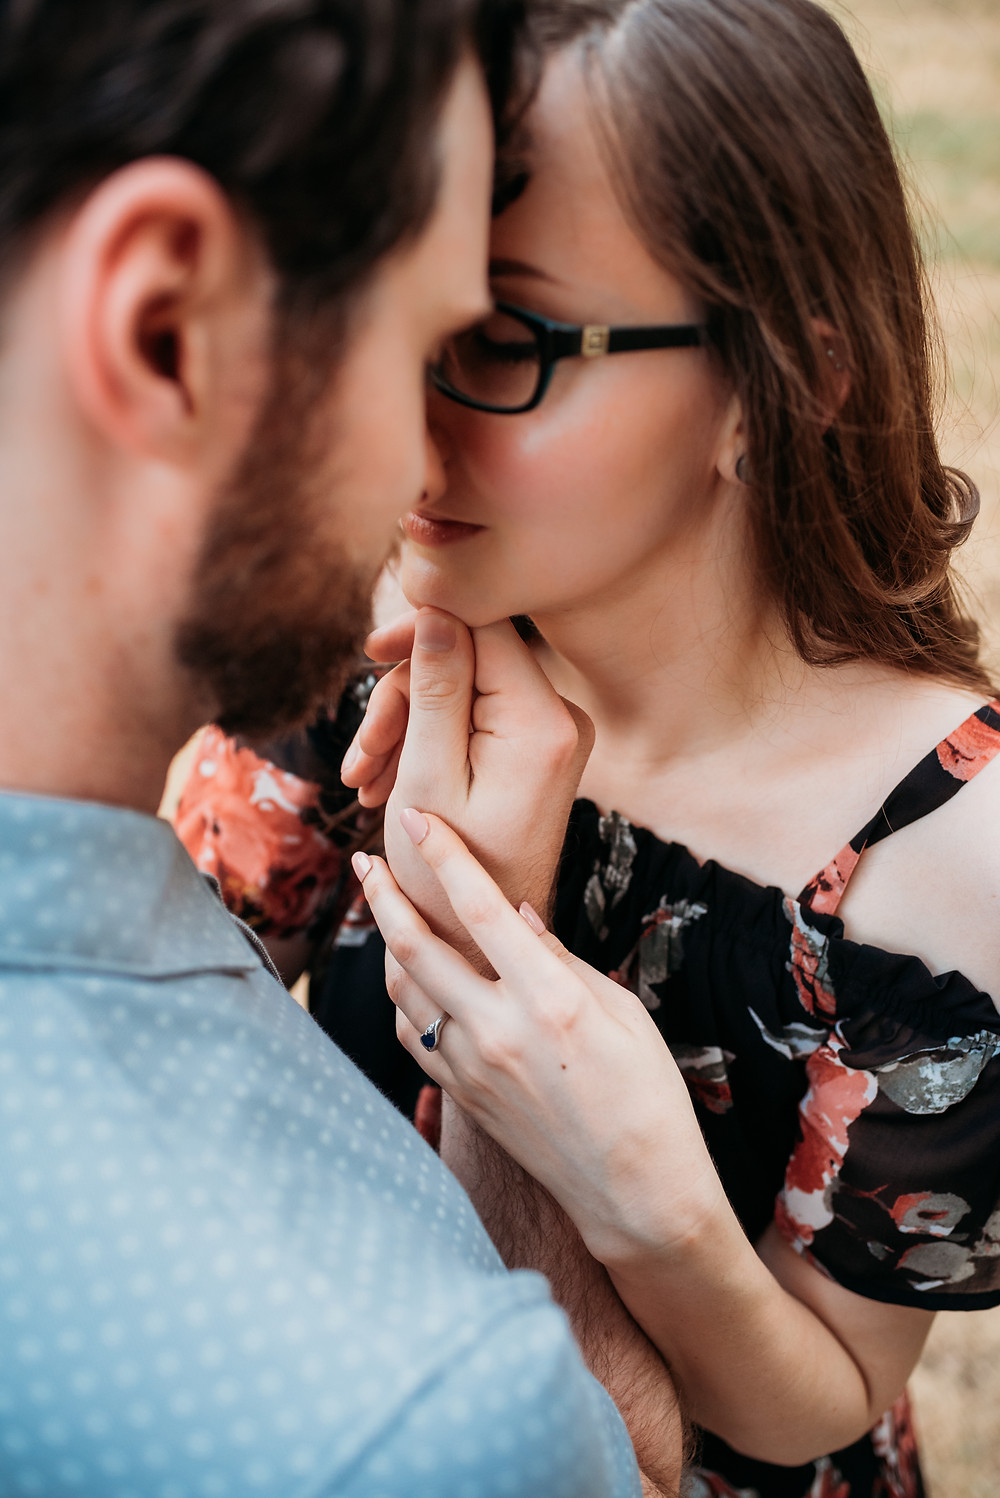 close up photo of a girl and guy standing forehead to forehead. The camera angle is looking down from behind the guy's shoulder. the guy is tilting the girl's face up towards him and the girl has her hand resting on his wrist to show off her engagement ring